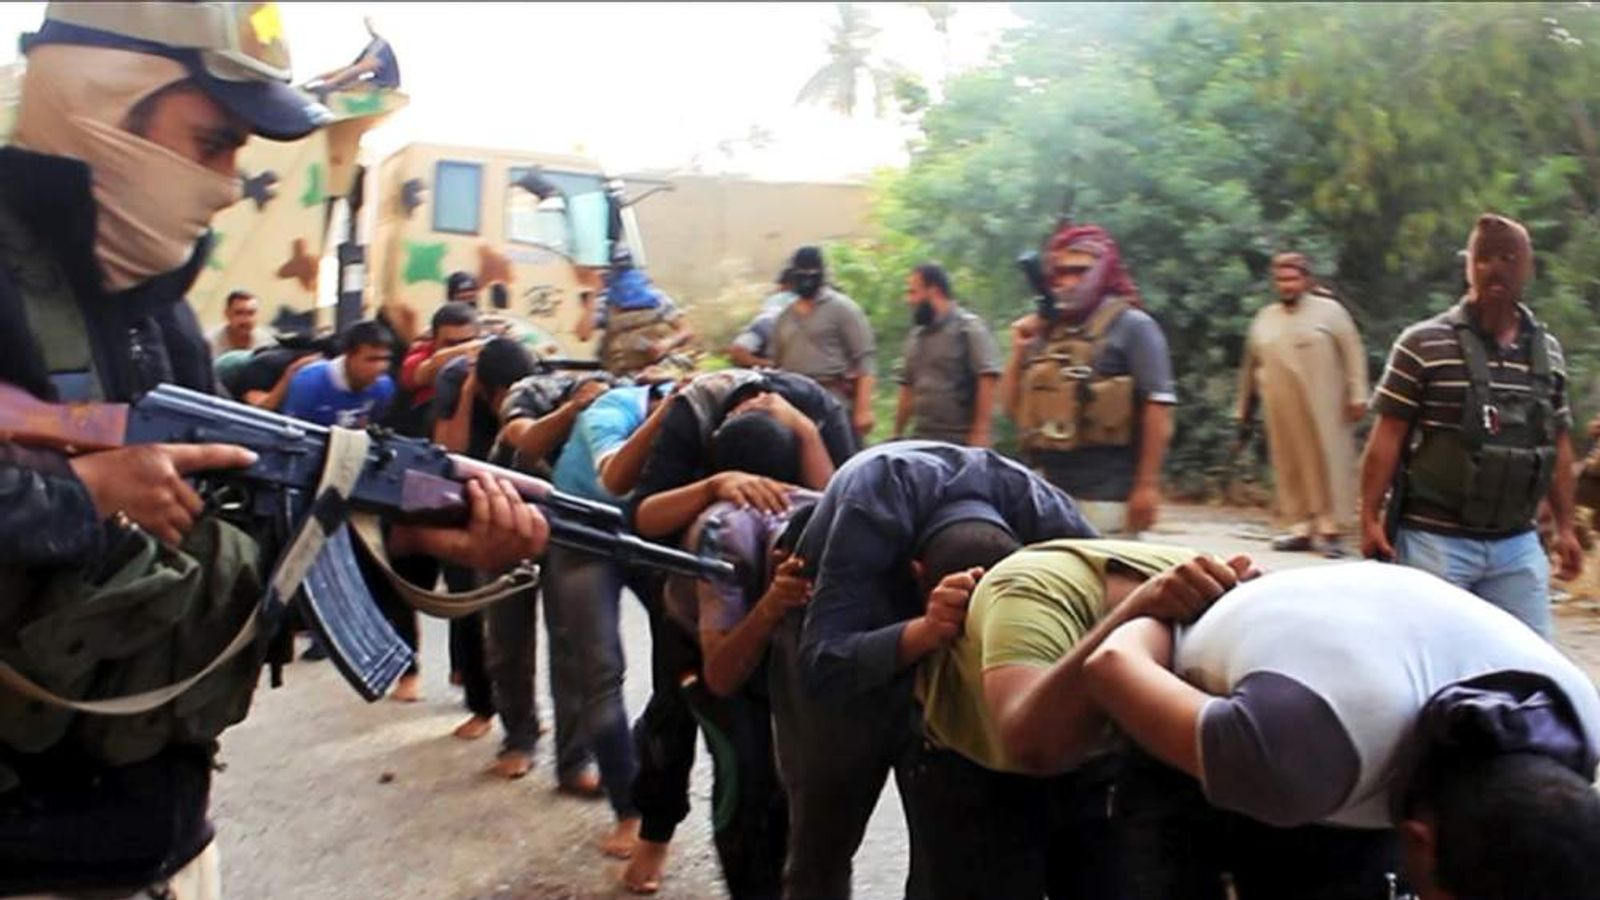 ISIS photos showing Iraqi men being led to their death.